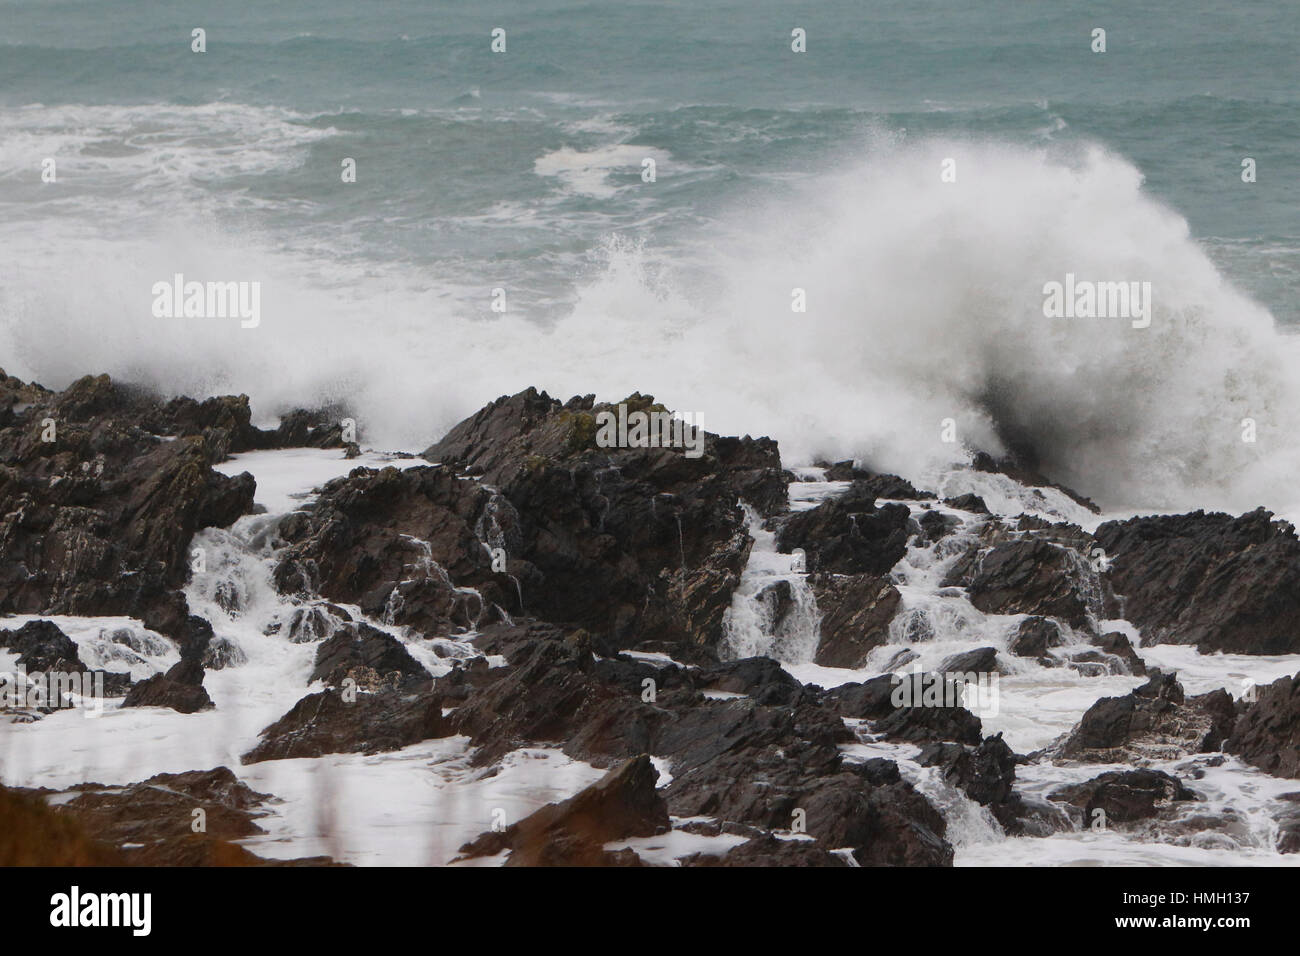 Newquay, Cornwall, UK. 3rd Feb, 2017. UK Weather. Strong gales and rain whips up the sea on the north coast of Cornwall. - Stock Image